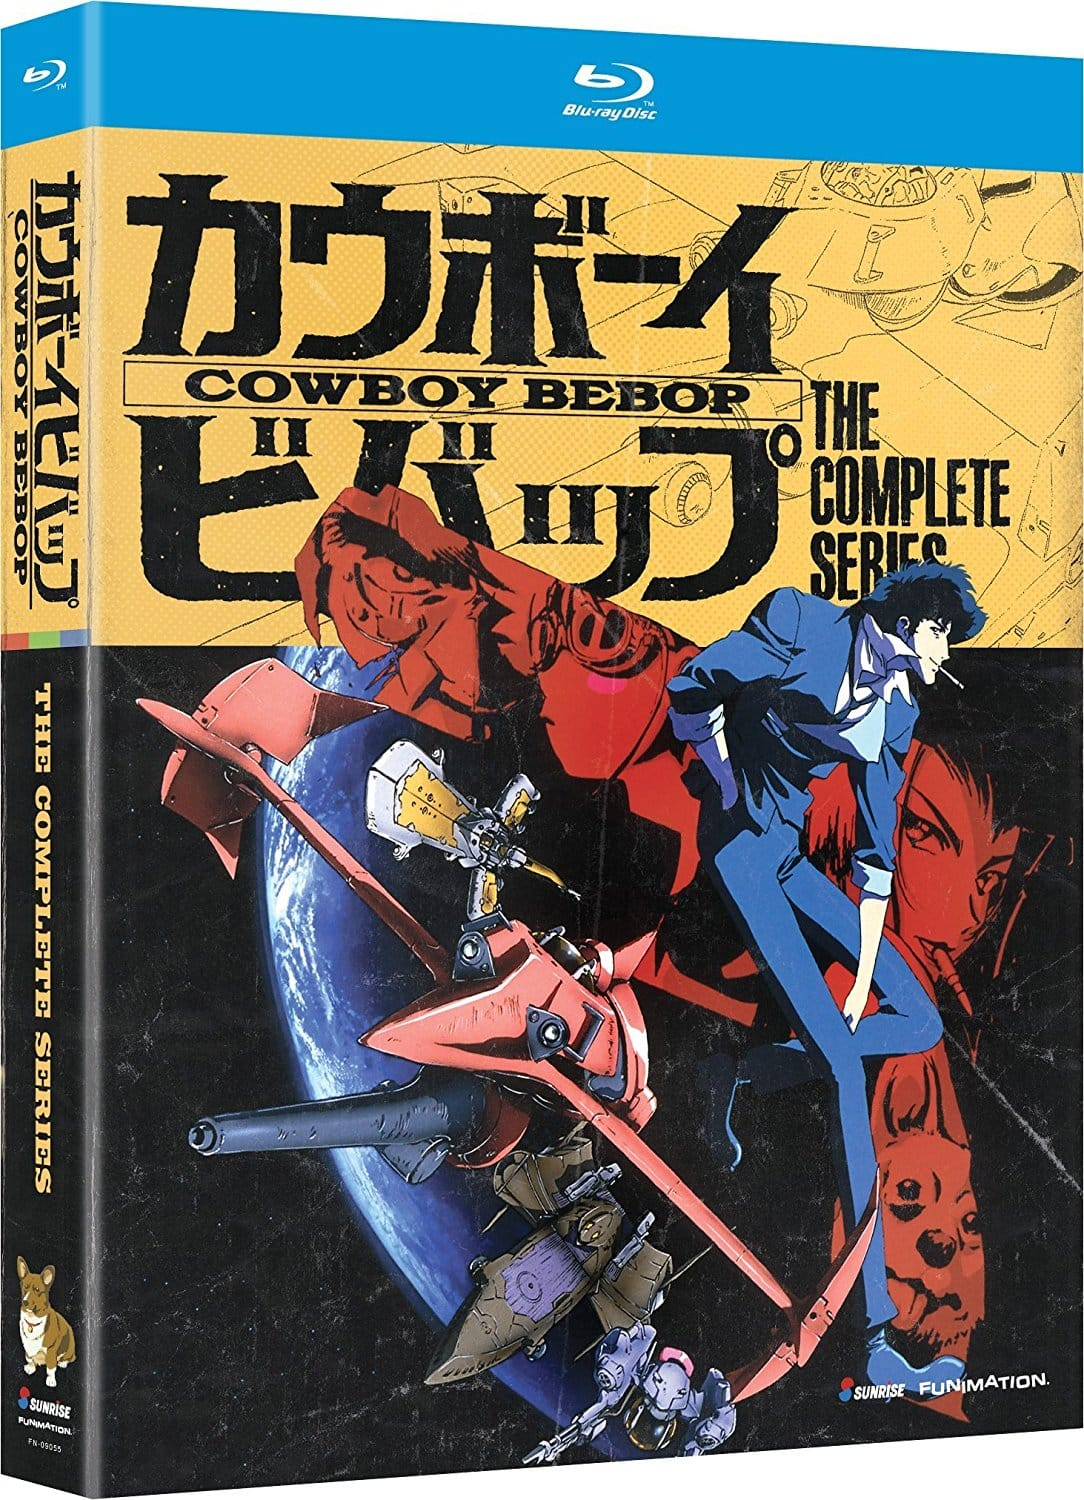 Anime Blu-Ray Movies:  Cowboy Bebop: The Complete Series $19.99, Black Butler: Book of Murder OVA's $14.99, Evangelion: 2.22 You Can $10.49 & Many More via Amazon